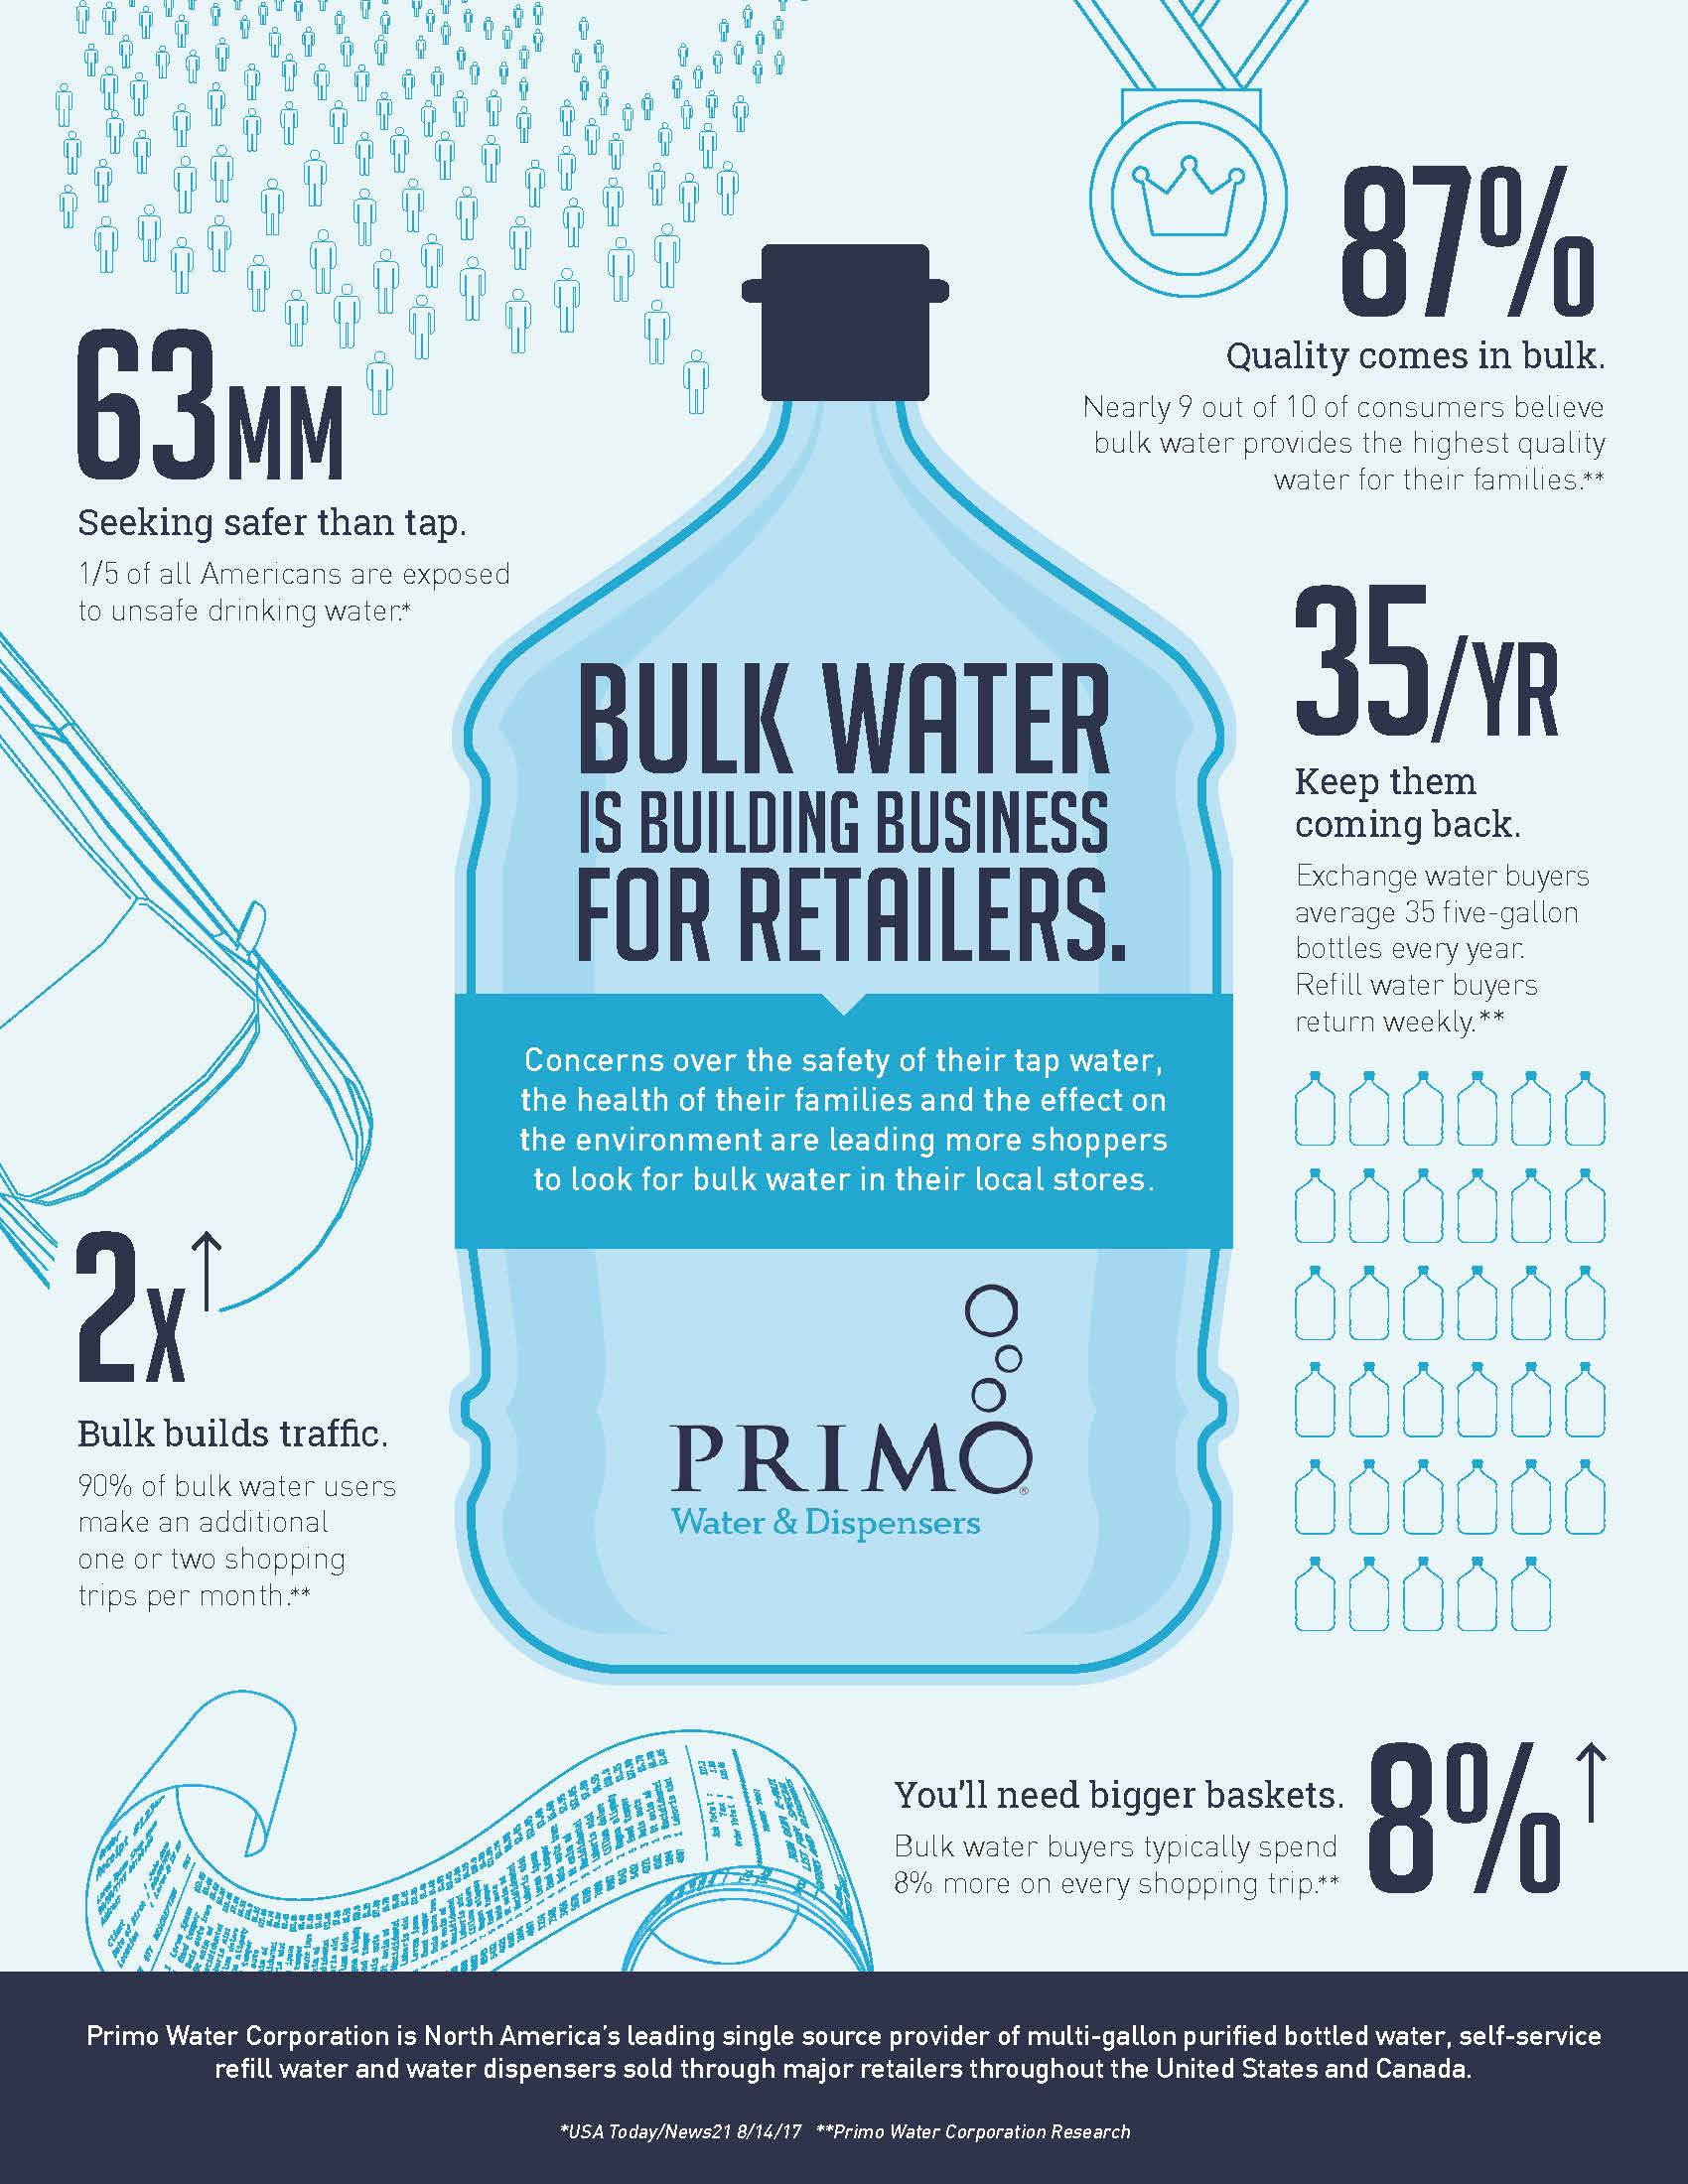 Infographic: bulk water is building business for retailers